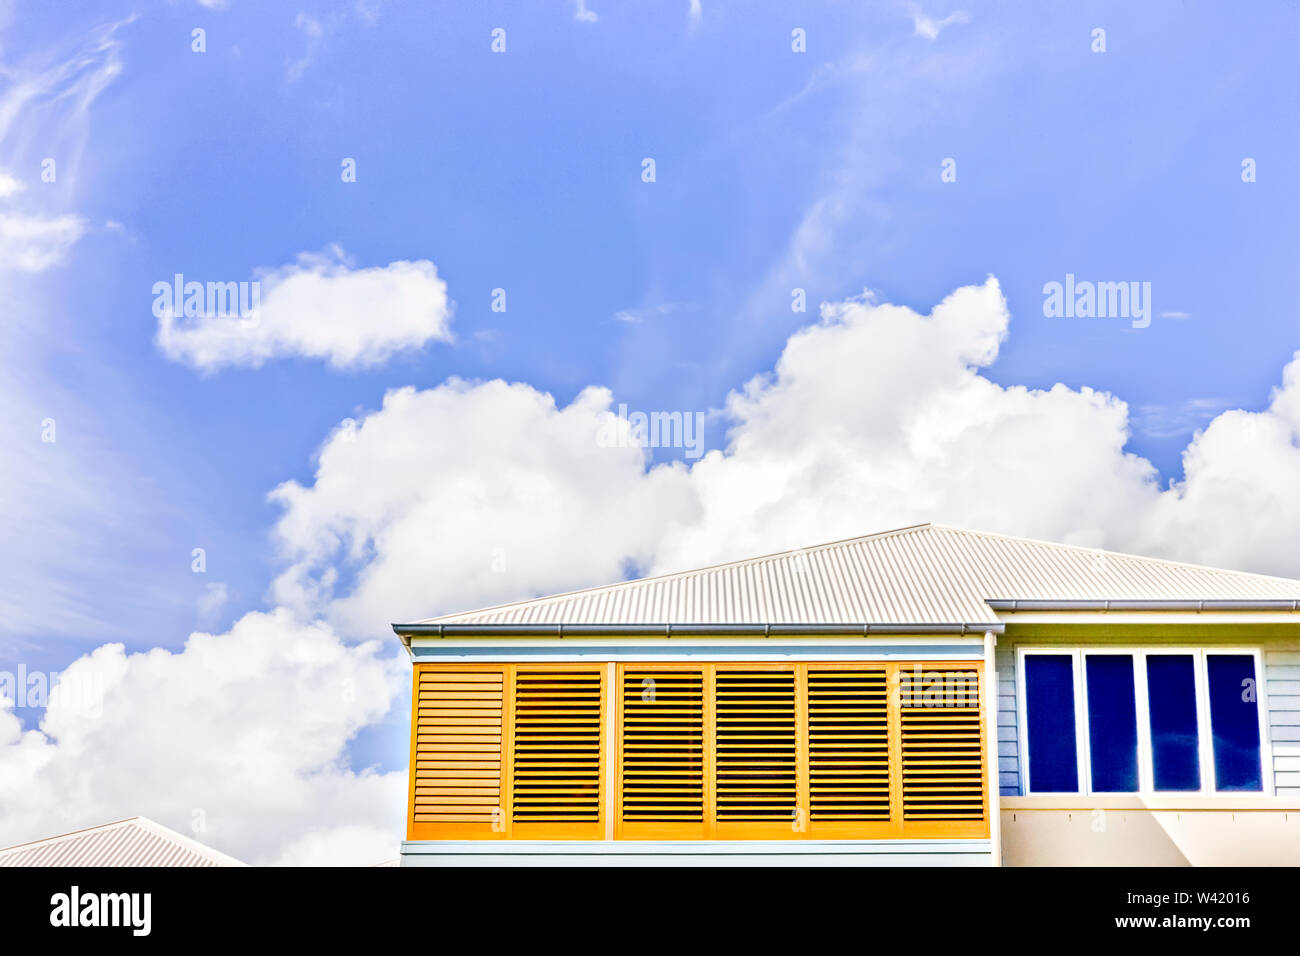 Sky Is Beautiful From Blue Color Luxurious Home With Designs Modern Apartment In City Wooden Windows Can See On Walls Drain Pipes Near Roof Stock Photo Alamy